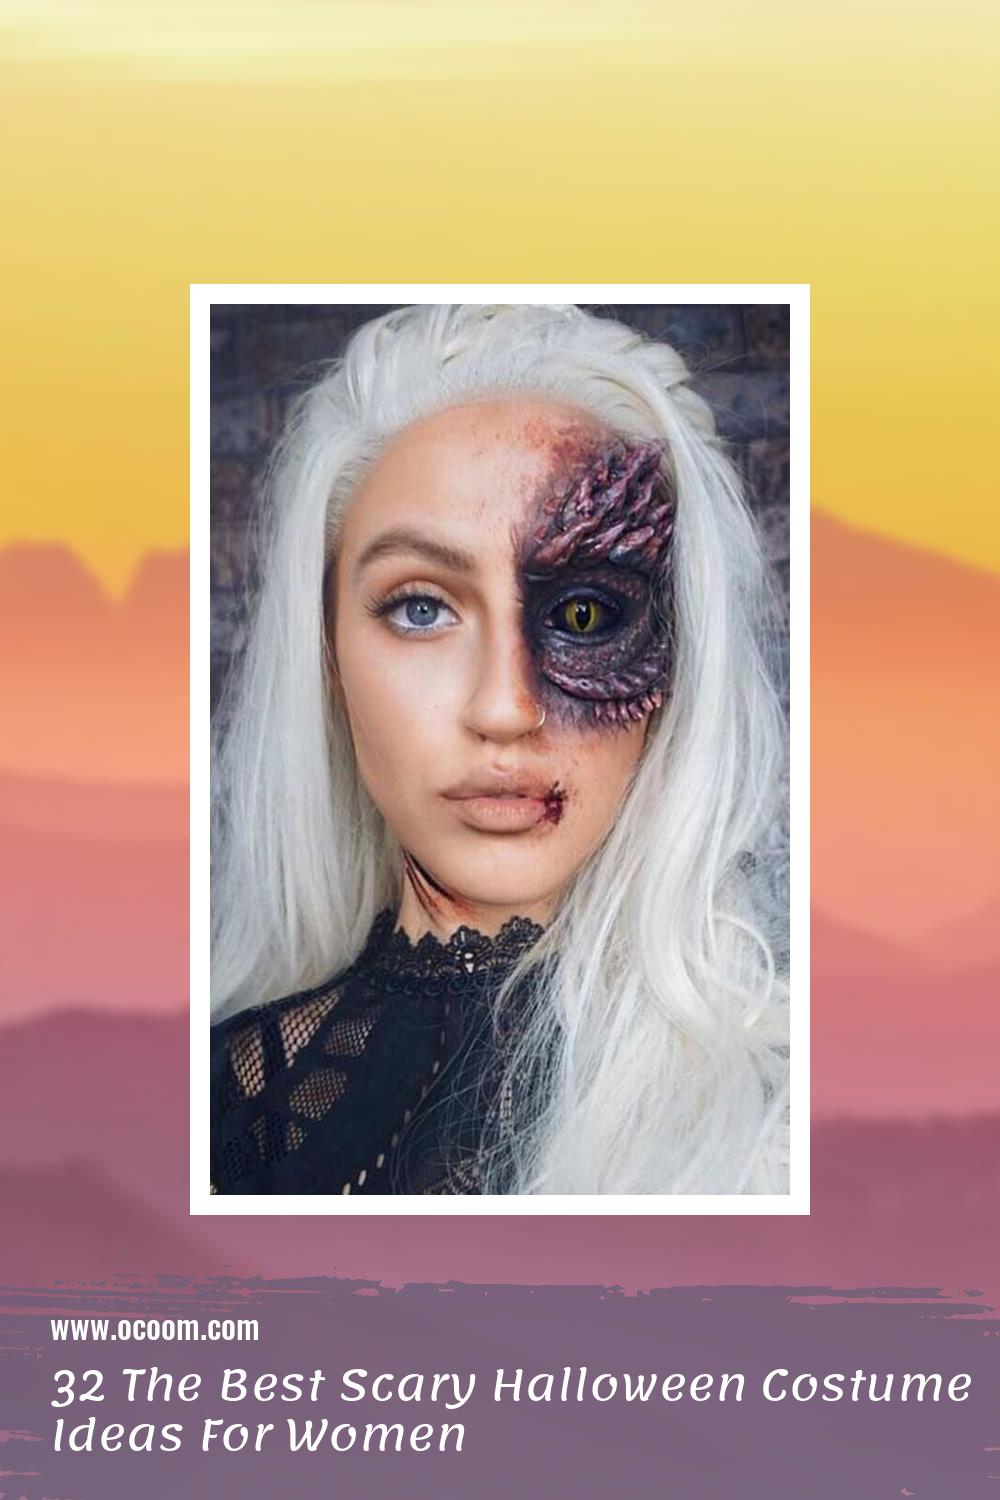 32 The Best Scary Halloween Costume Ideas For Women 18